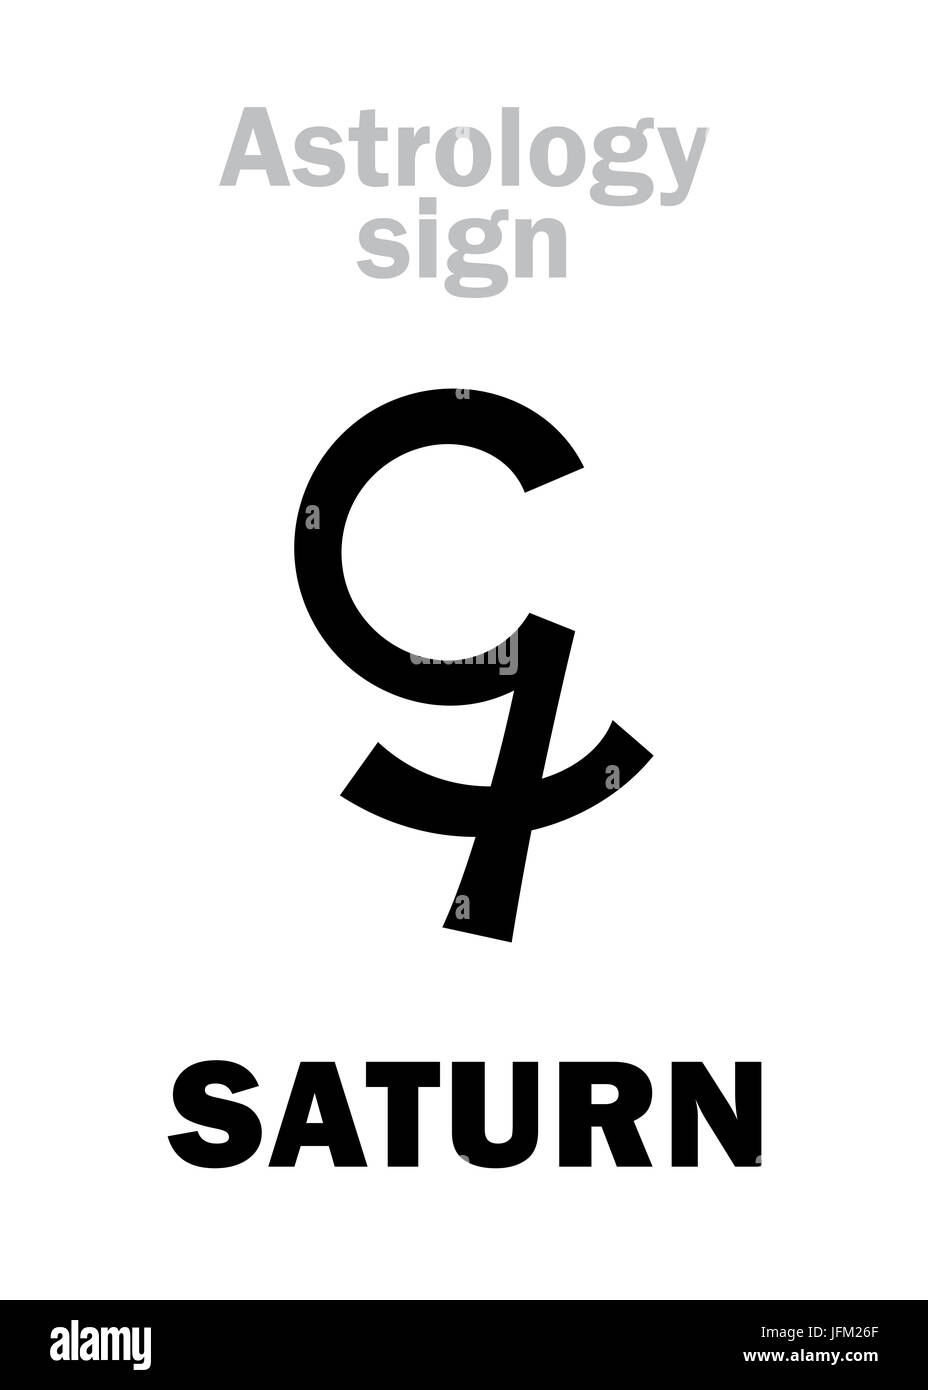 Astrology planet saturn stock photo royalty free image 147343575 astrology planet saturn buycottarizona Image collections